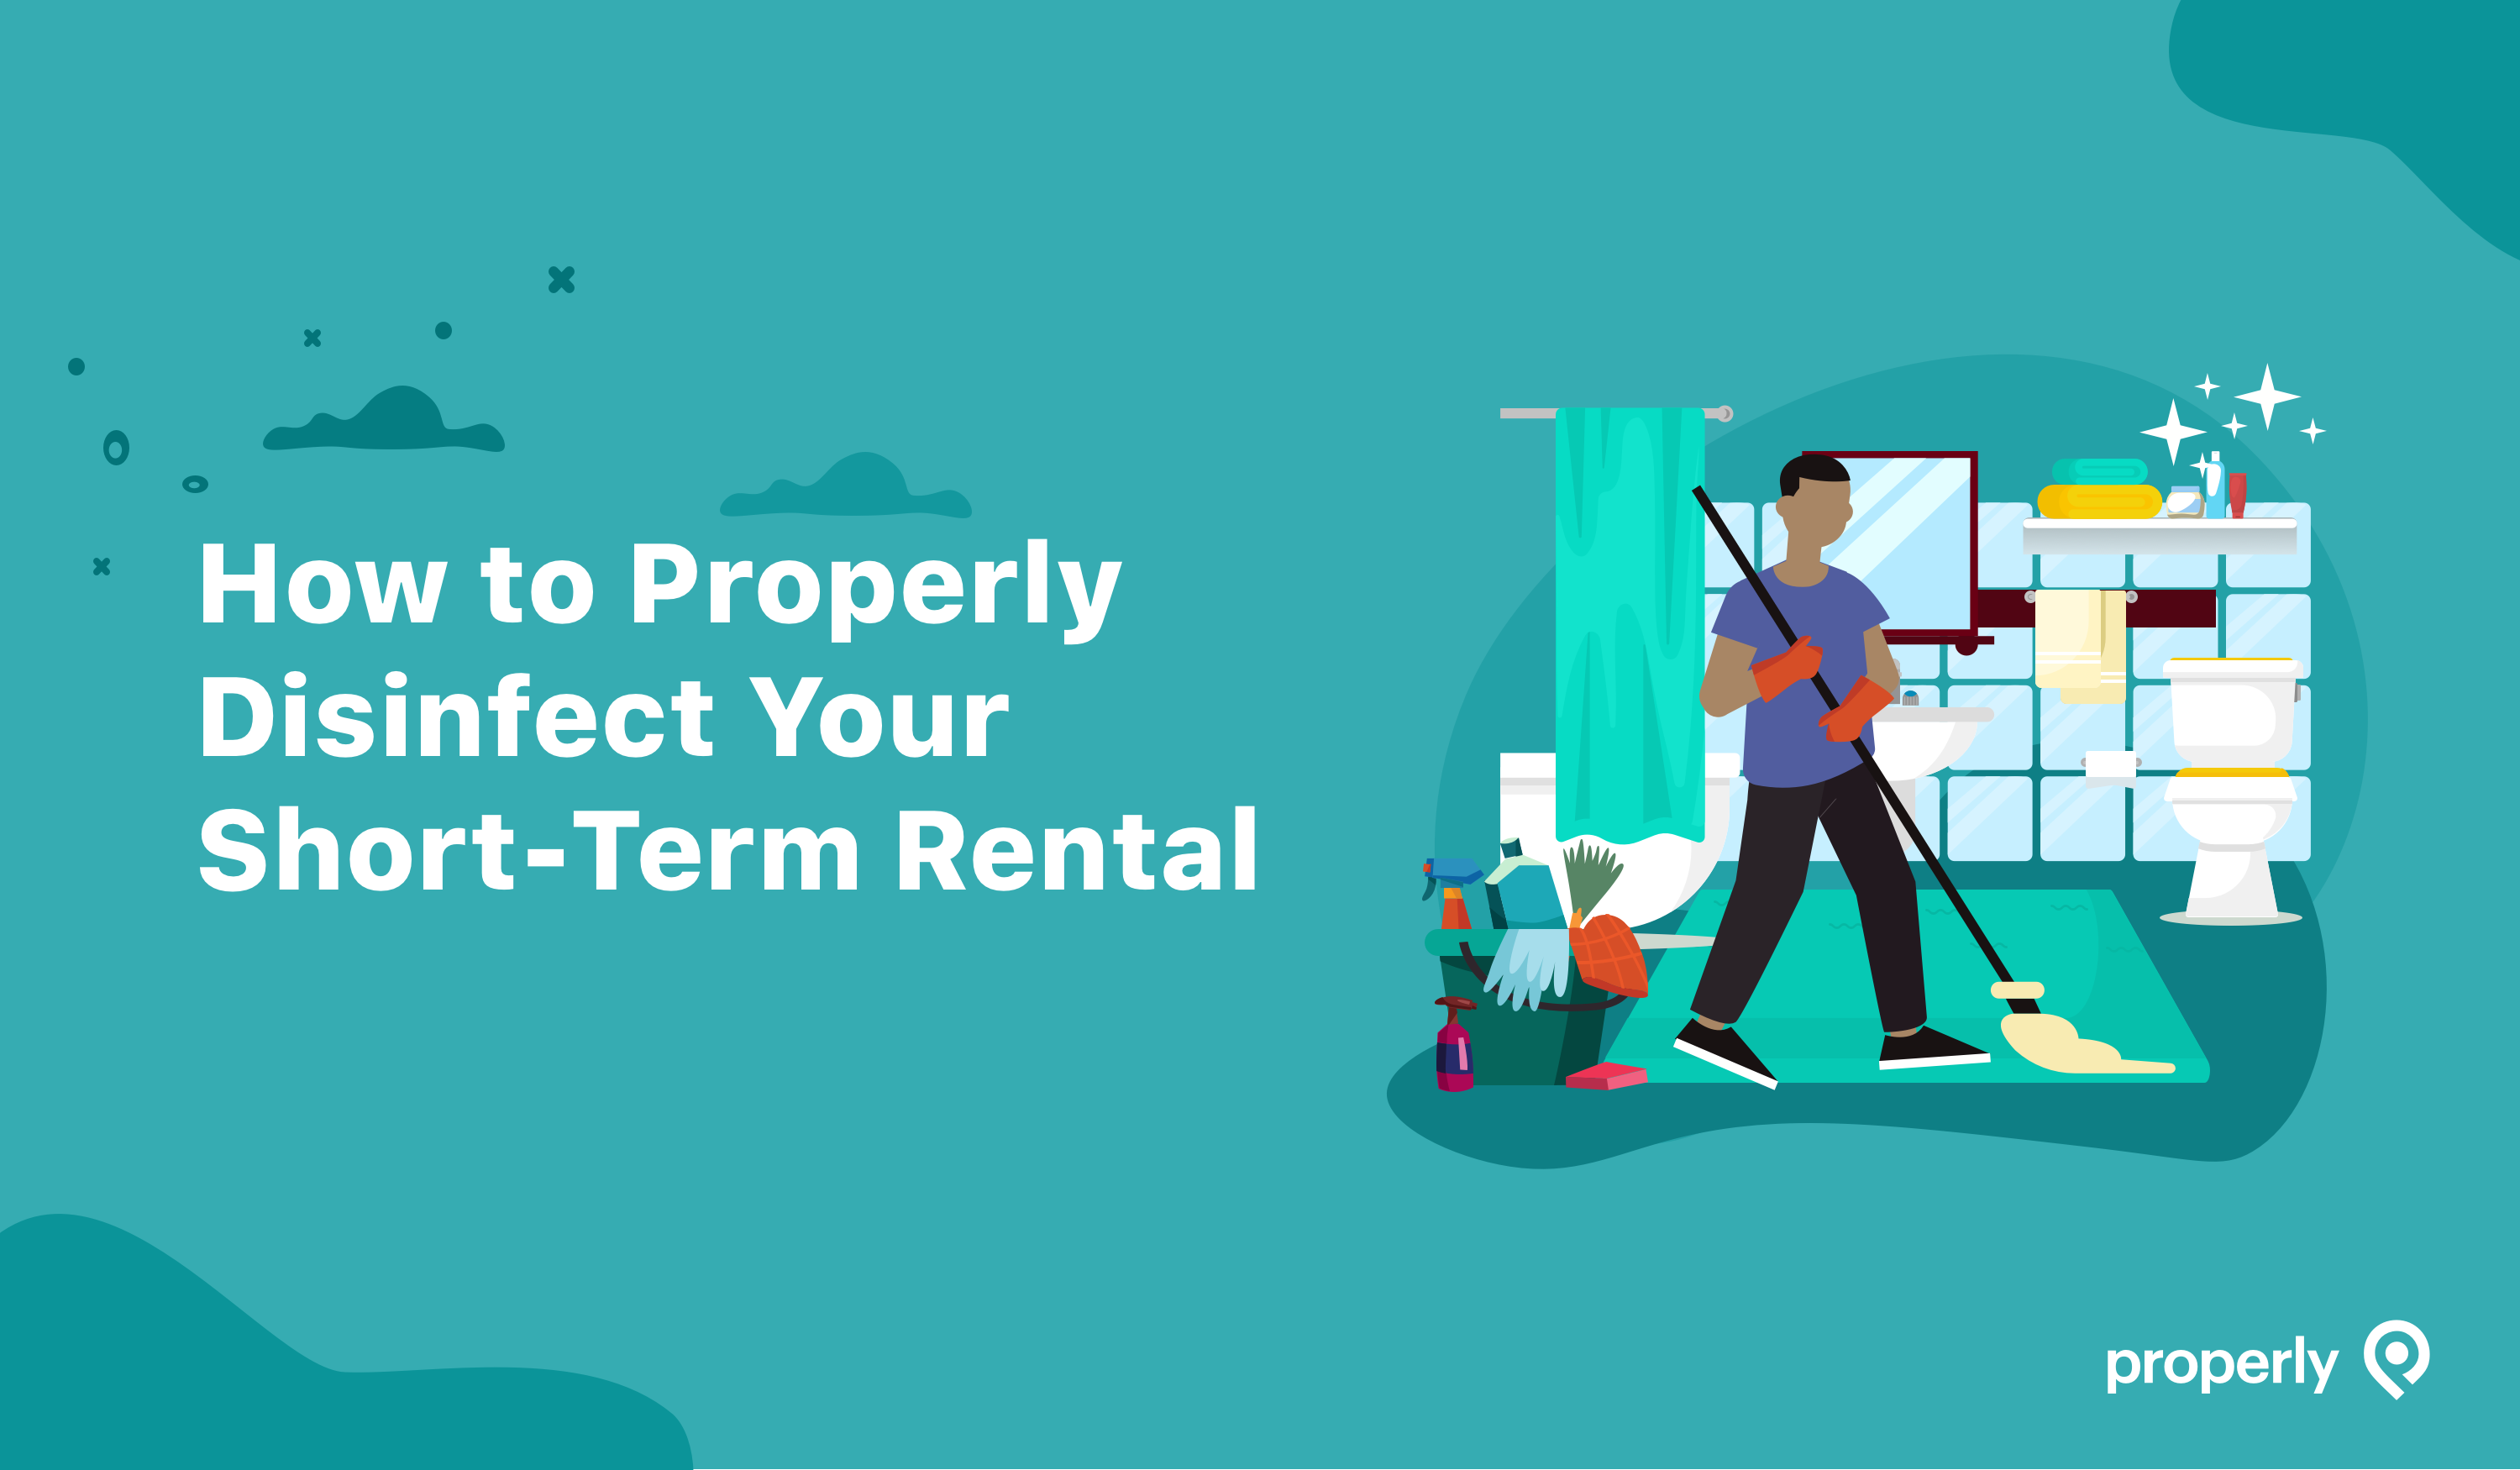 How-to-properly-disinfect-your-Short-Term-Rental